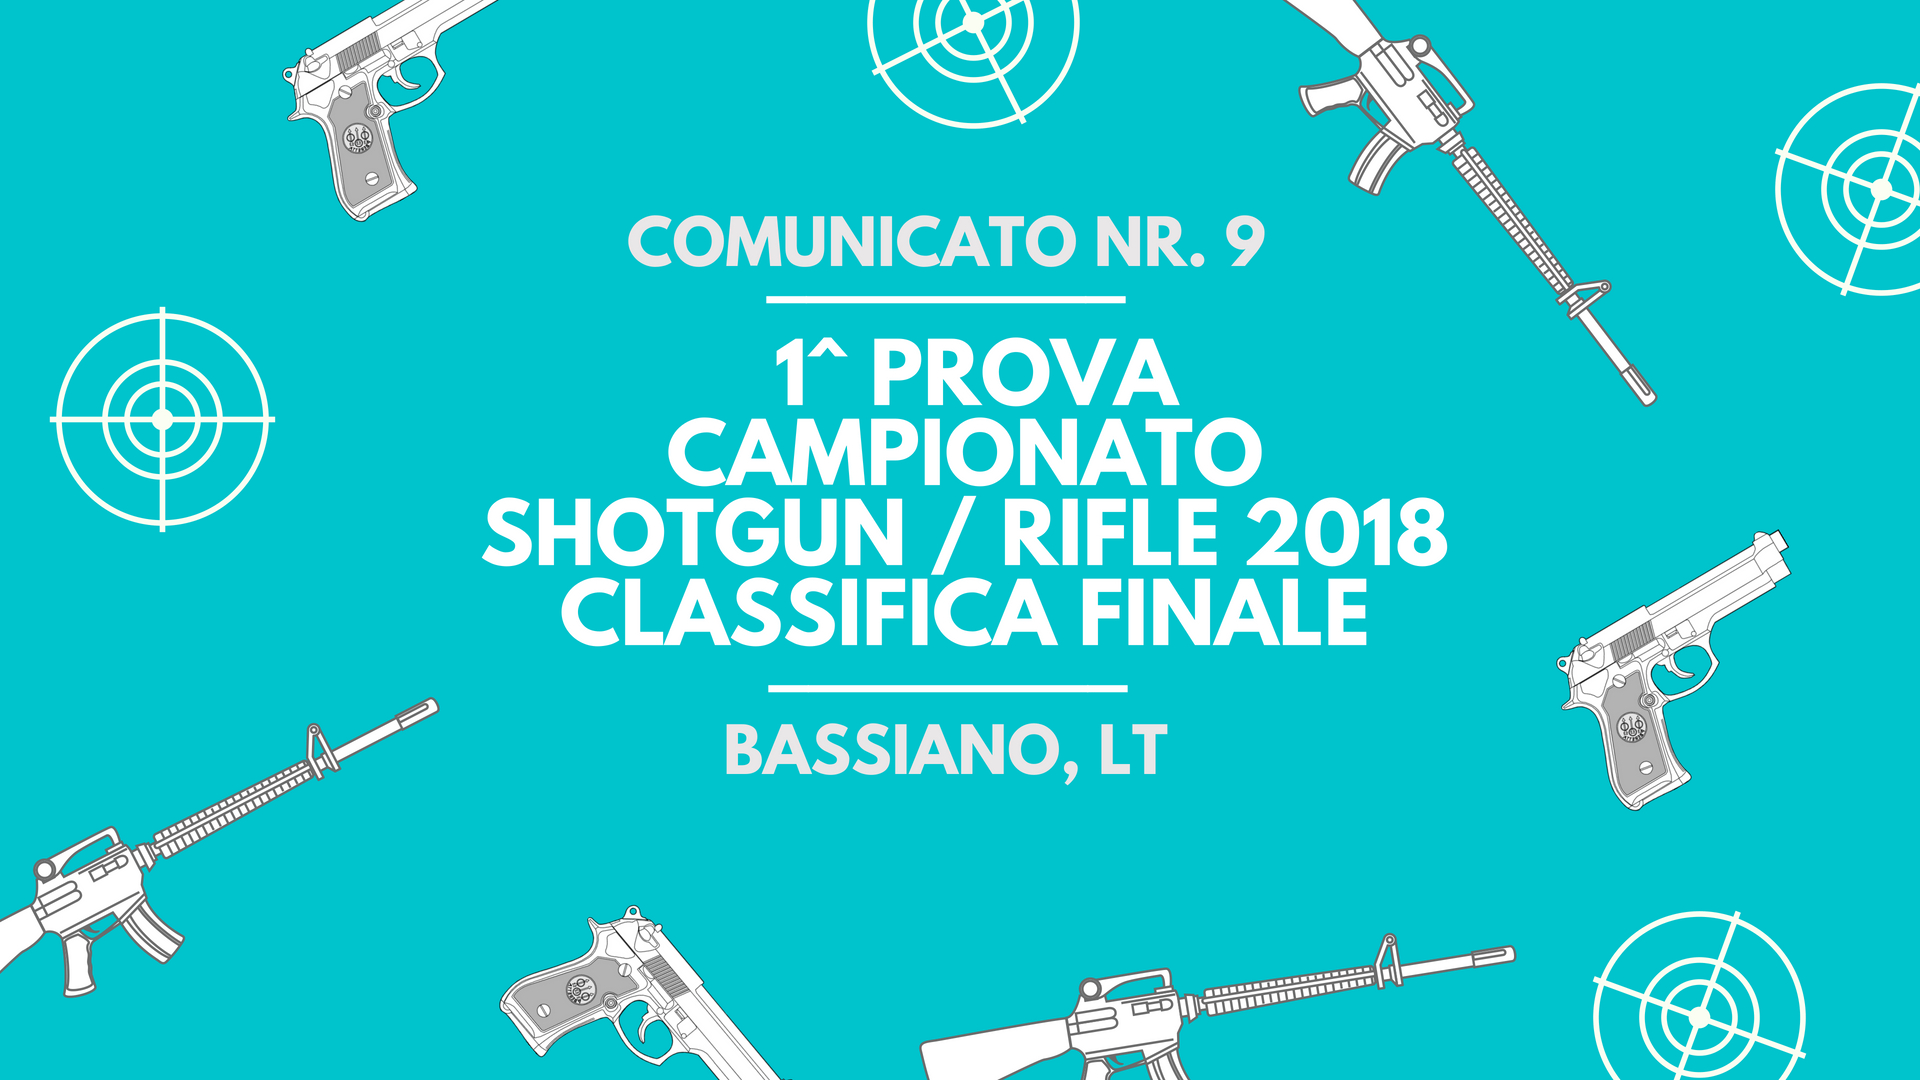 Commissione Sportiva | 1 prova Campionato Shotgun-Rifle Bassiano Classifica finale